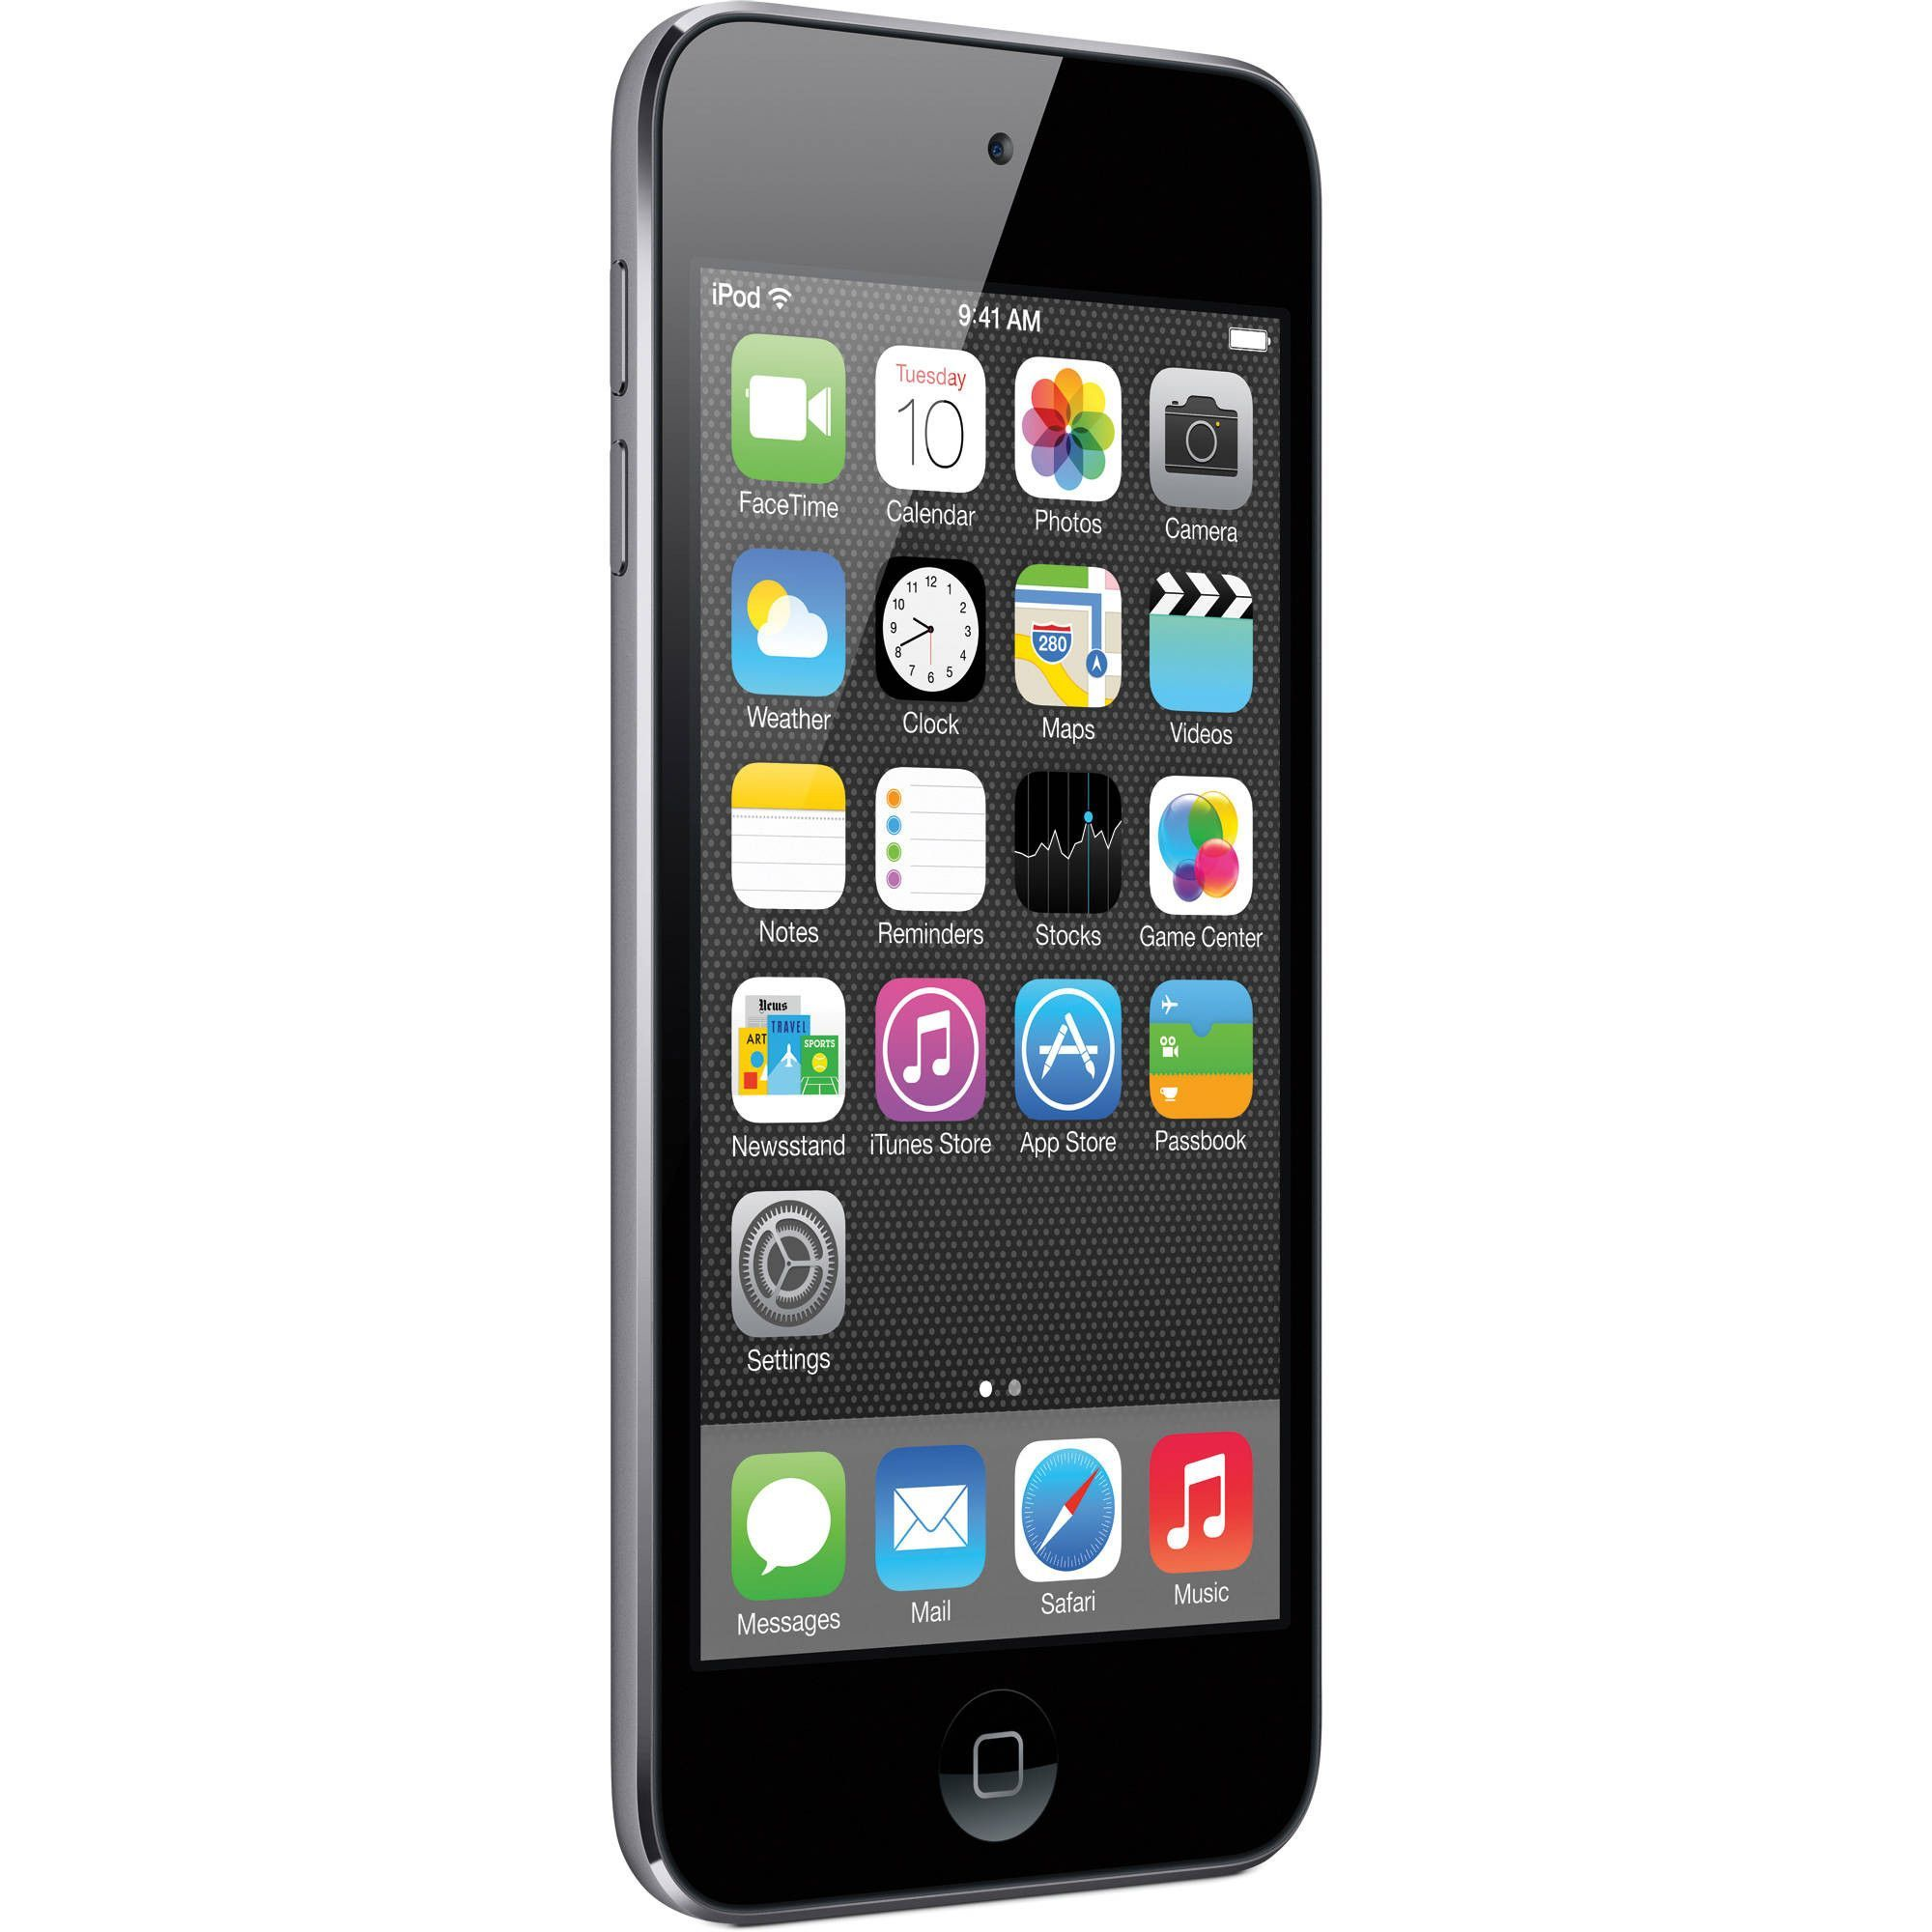 iPod touch features a 6mm ultrathin design and brilliant